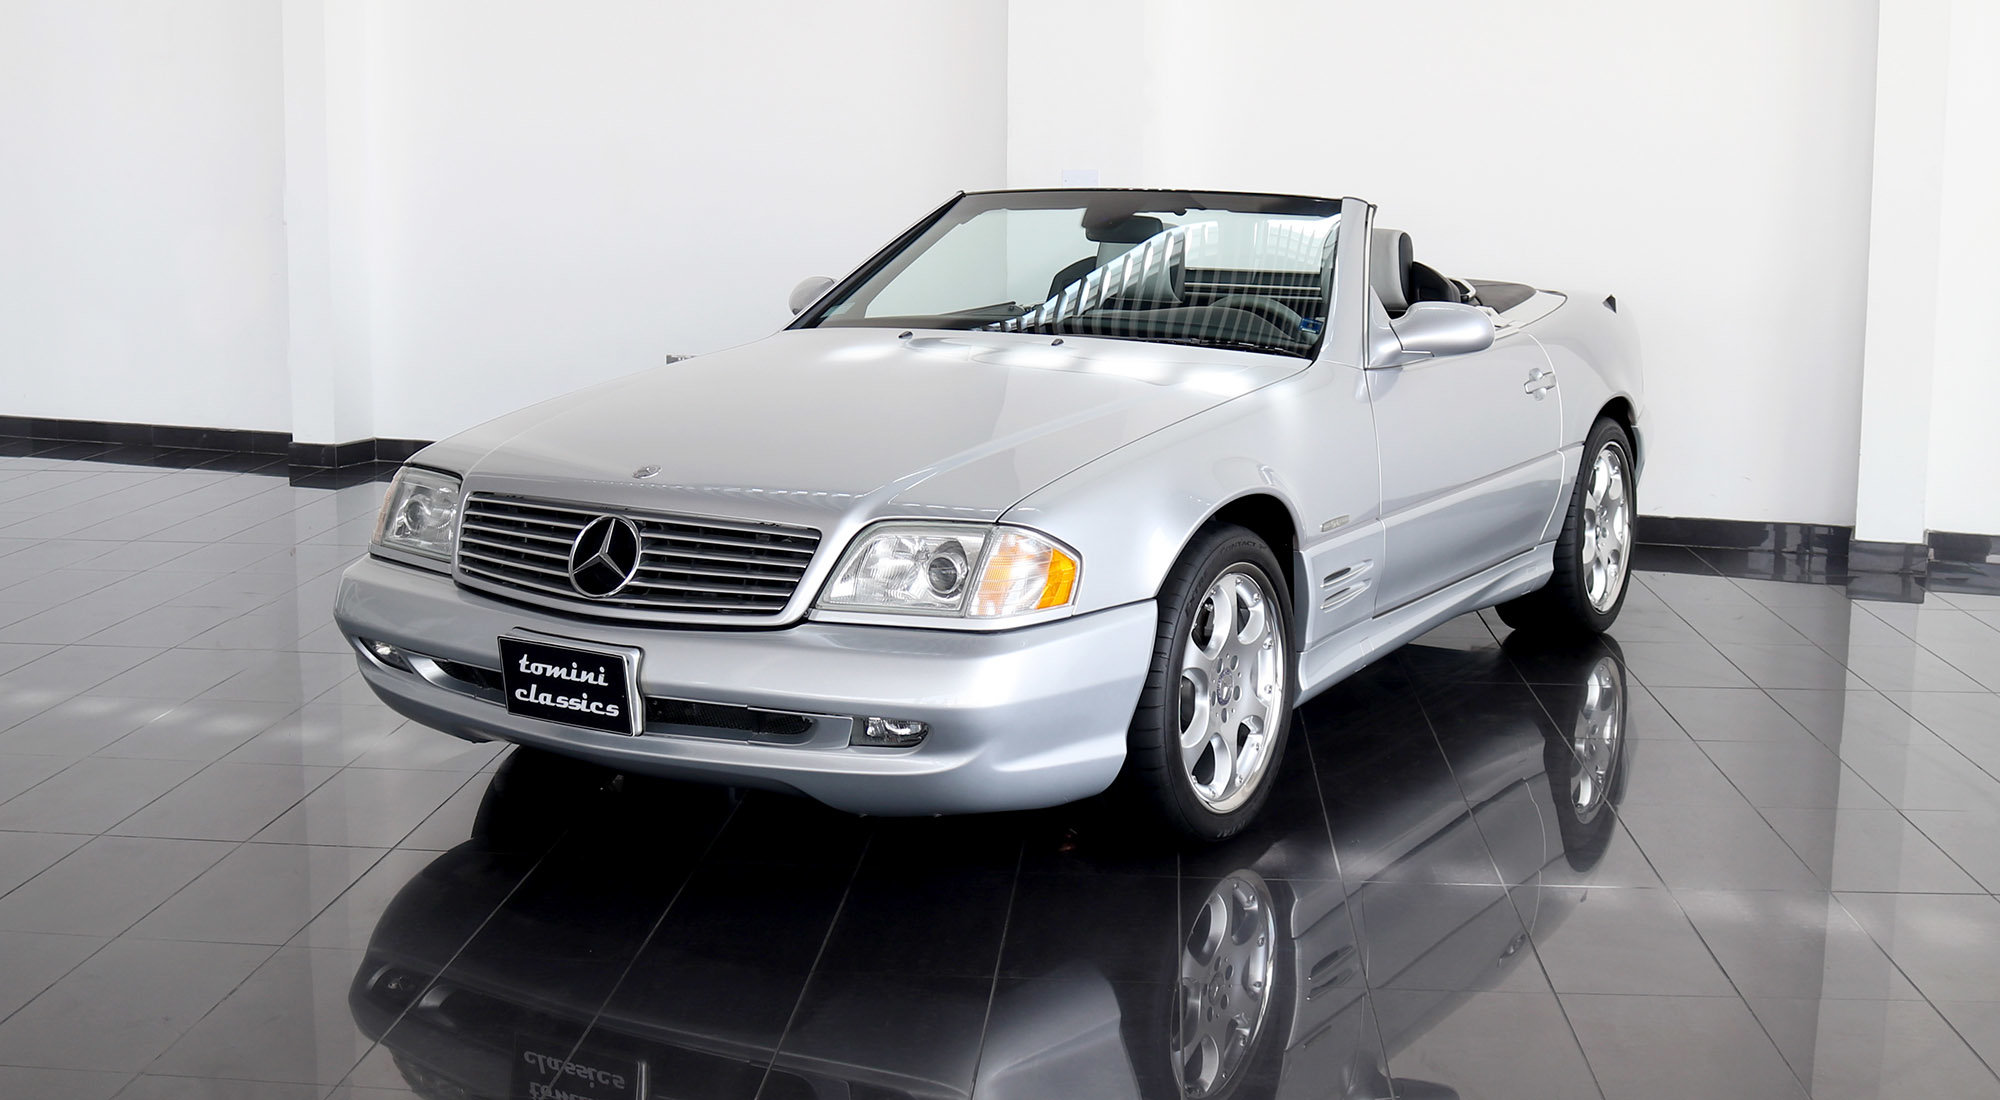 Mercedes-Benz SL500 Silver Arrow (2002) For Sale (picture 2 of 6)